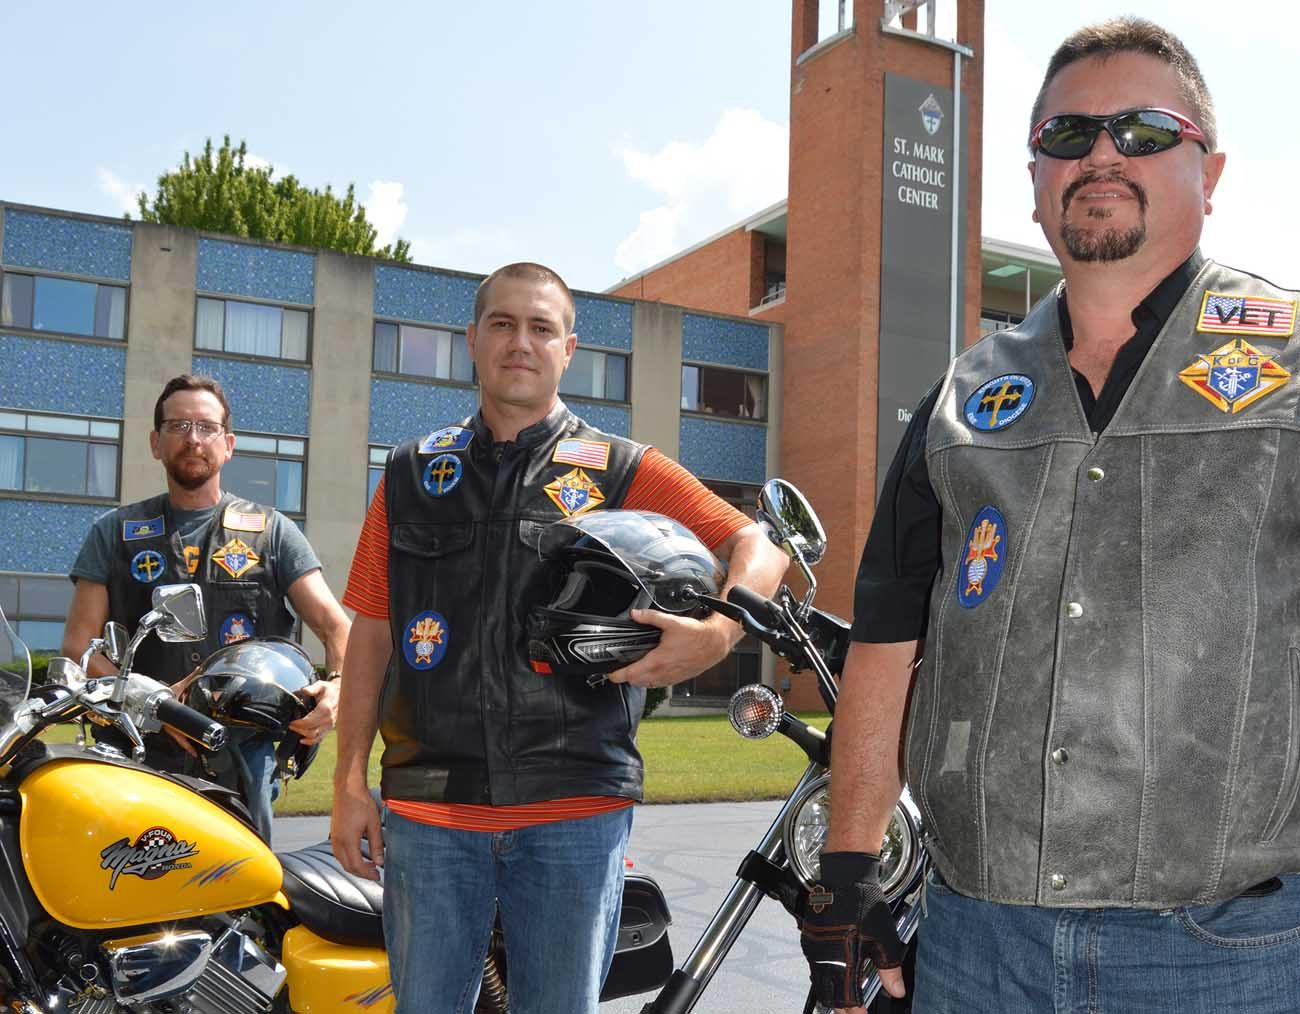 Matt Goreczny, Chris Wolfgong and Robert Burneisen, front right, pictured in an Aug. 4 photo, are founding members of the Pennsylvania Chapter of Knights on Bikes. (CNS photo/Mary Solberg, FaithLife)